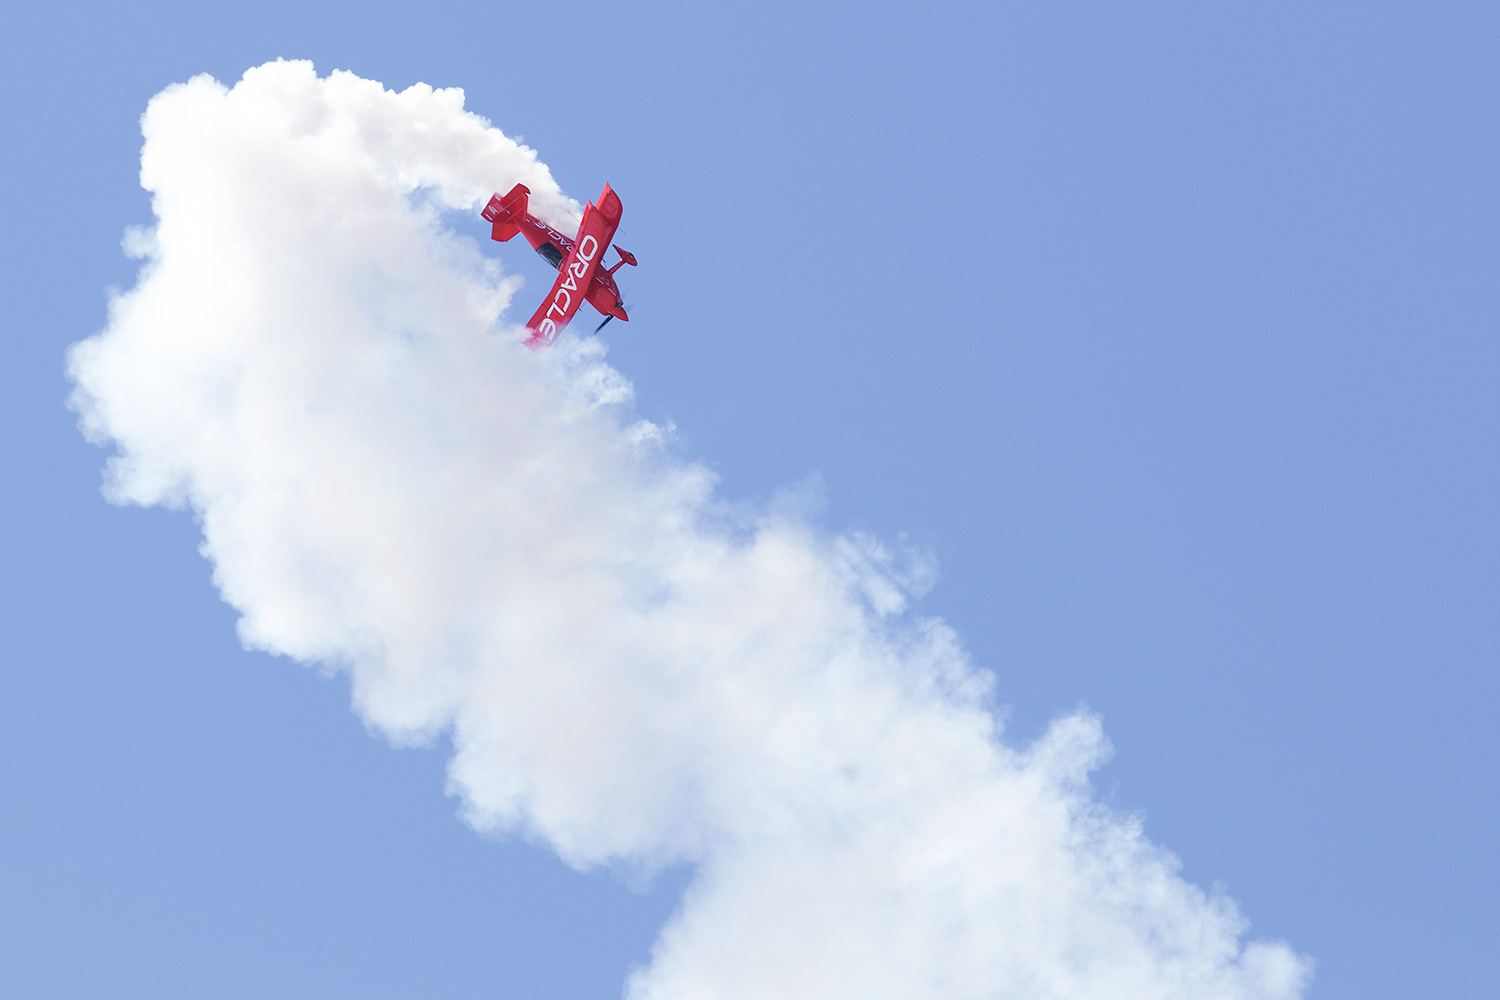 Sean D. Tucker put on a tremendous performance with daring maneuvers in his bi-plane, the Oracle 3.